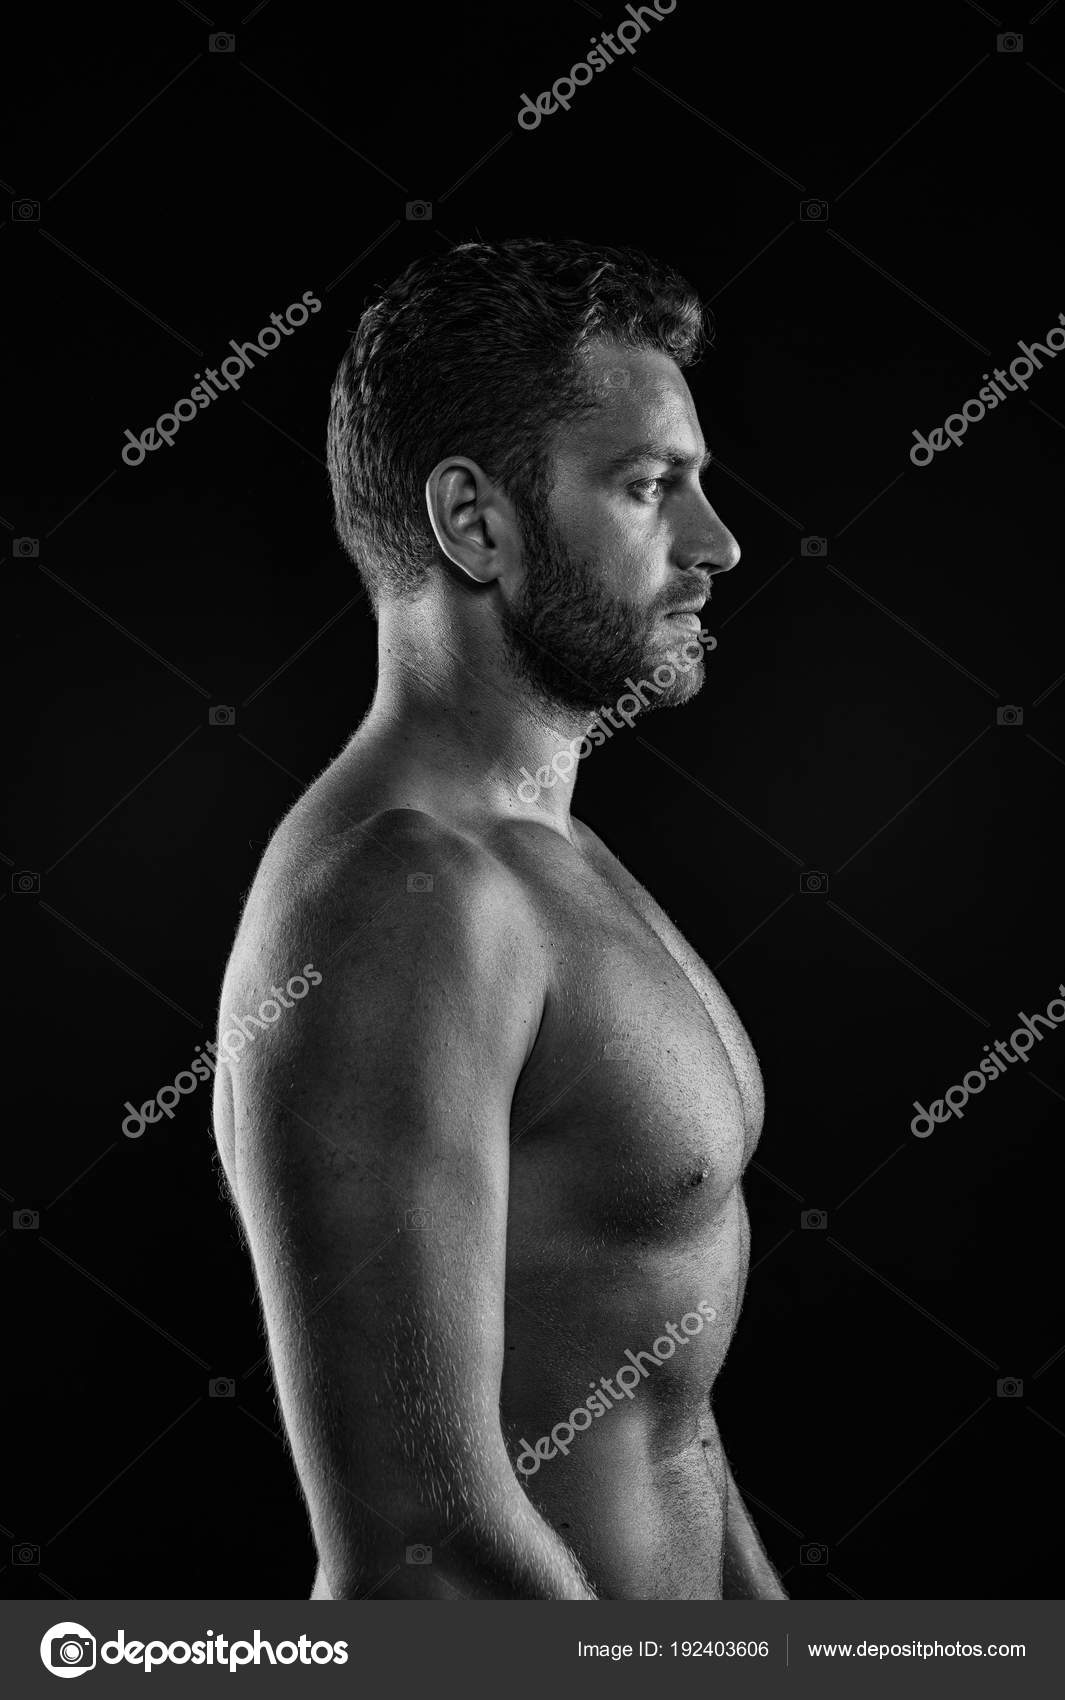 Sport Bodybuilding And Fitness Concept Bearded Man Athlete With Fit